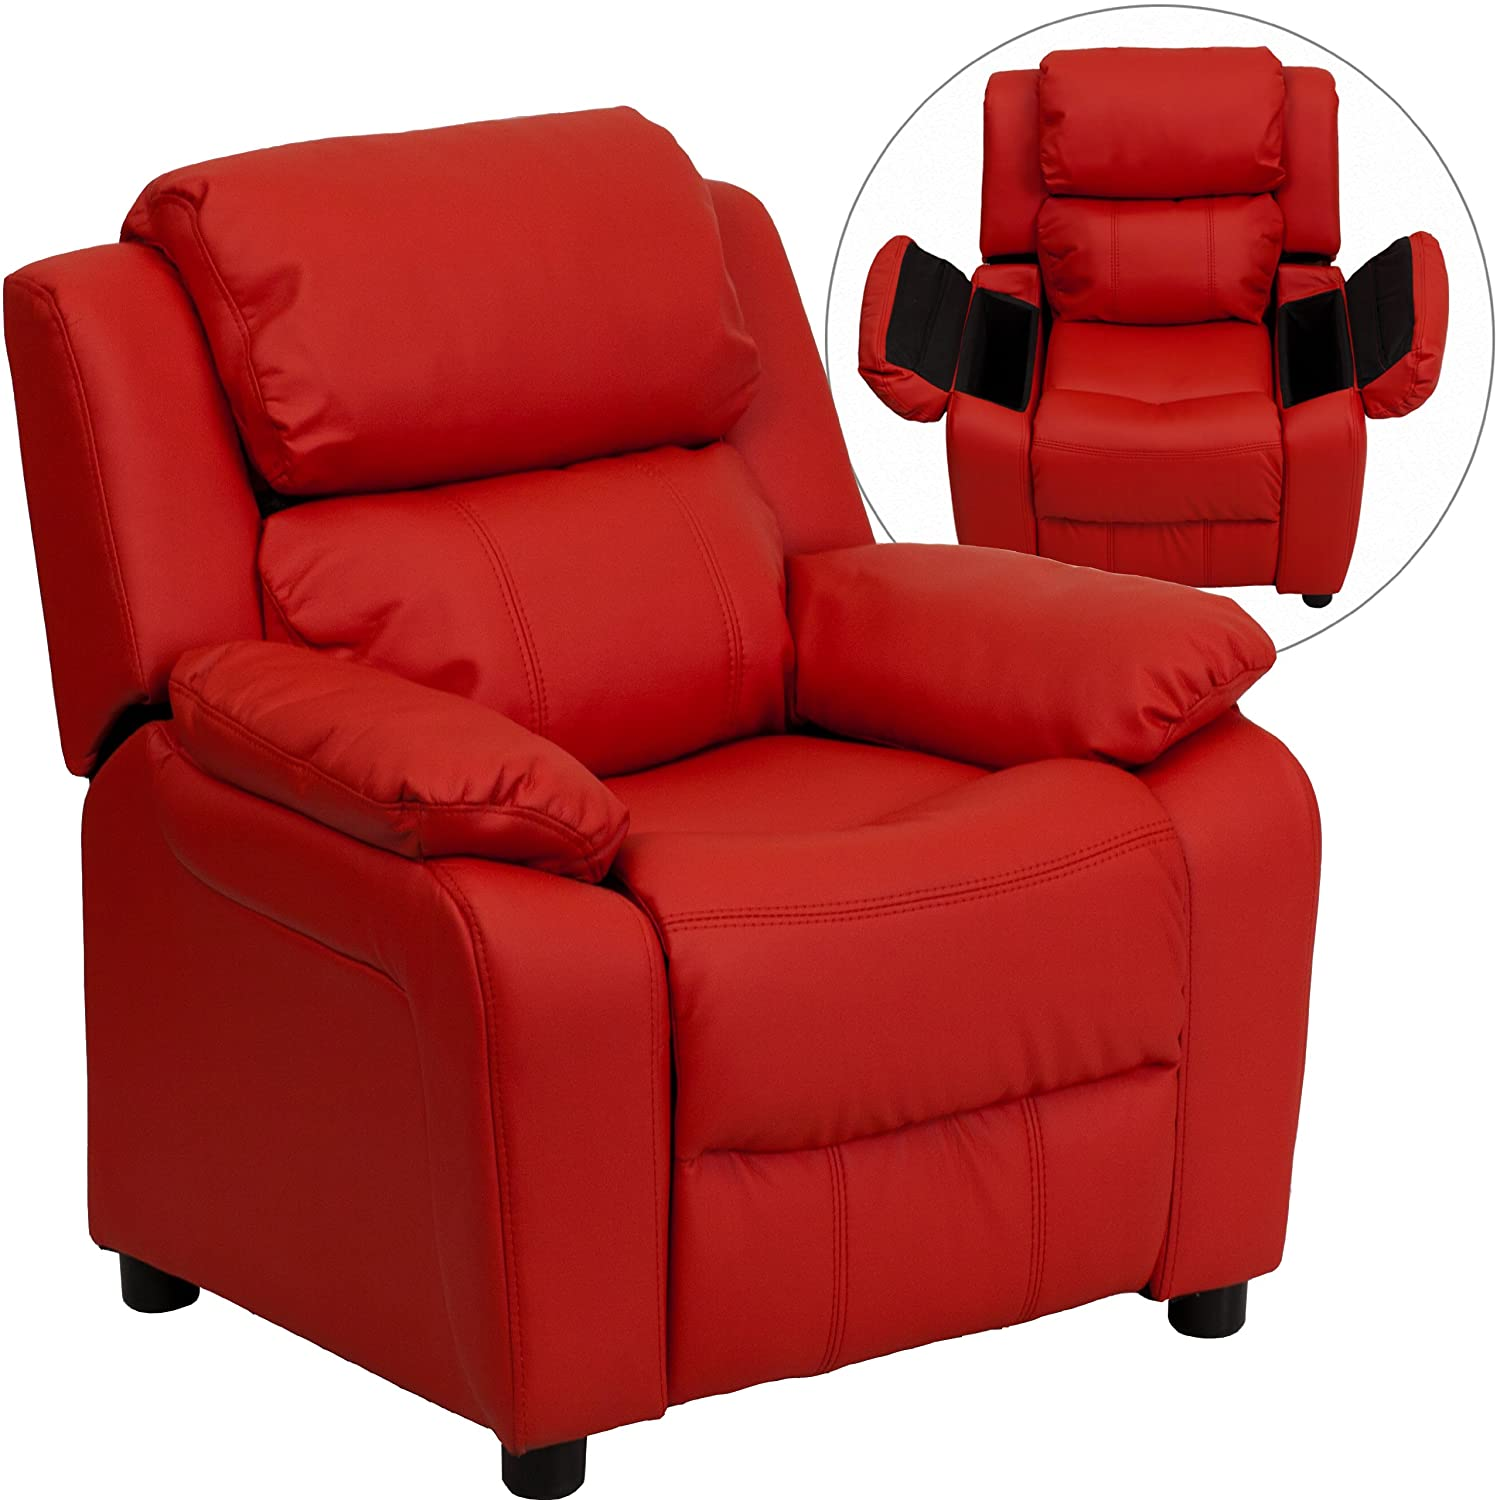 Amazon.com: Flash Furniture Deluxe Padded Contemporary Red Vinyl Kids  Recliner With Storage Arms: Kitchen U0026 Dining